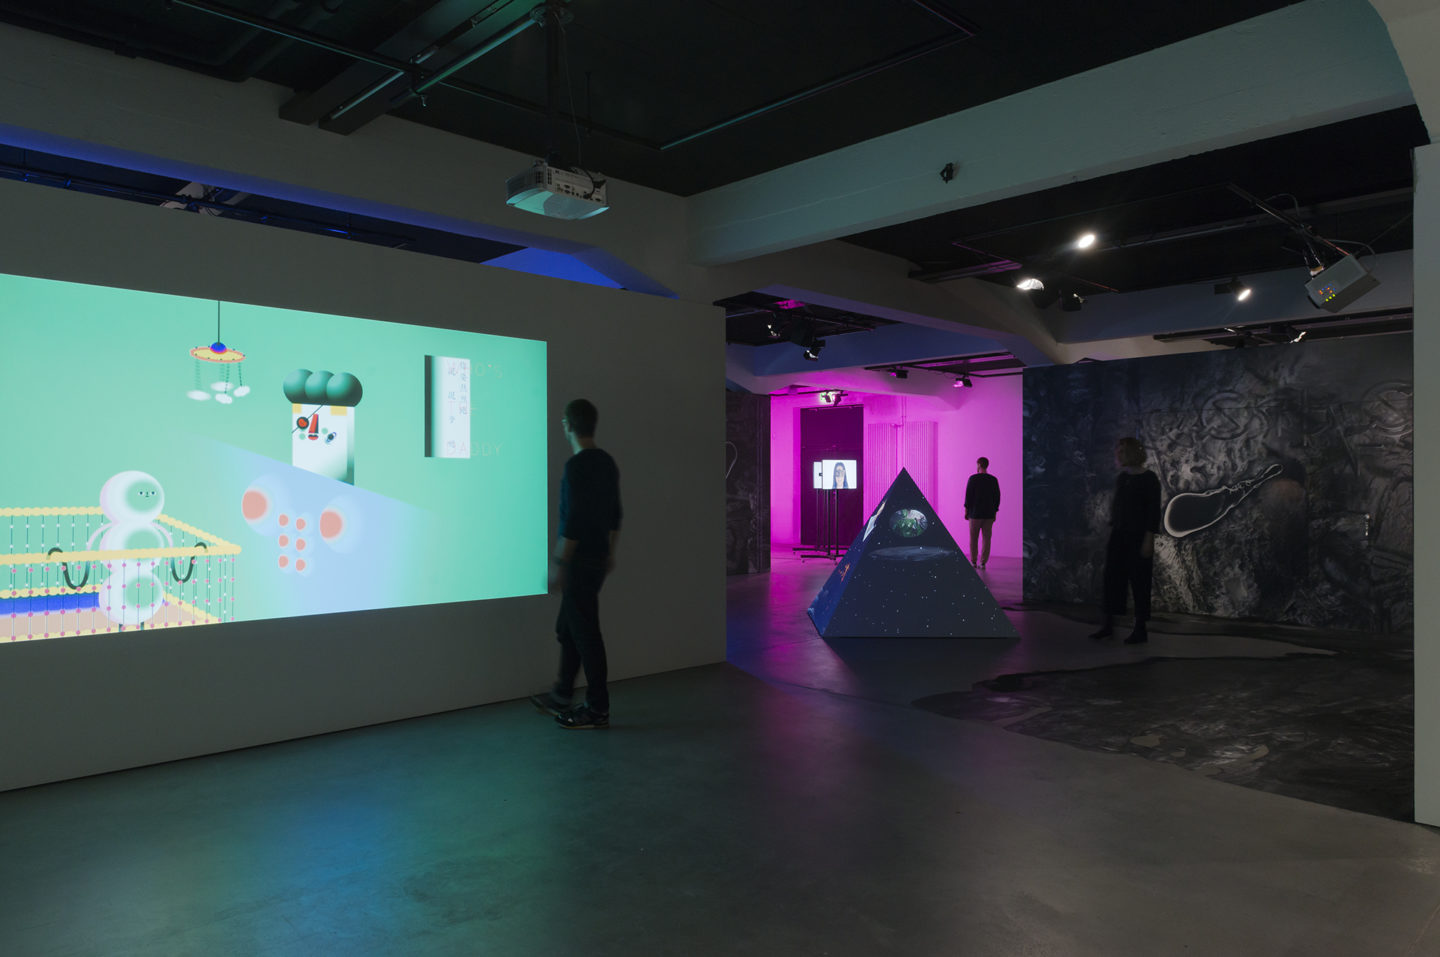 "Installation View Wong Ping ""Who's the Daddy,  2017"" (left), Tabita Rezaire ""Ultra Wet – Rec­apitulation, 2018"", Joey Holder ""The Evolution of the Spermalege, 2018"", !Mediengruppe Bitnik ""Ashley Madison Angels At Work in Basel, 2018"" (on the right)  at HEK, Basel / Photo: Franz Wamhof / Courtesy: the artists"